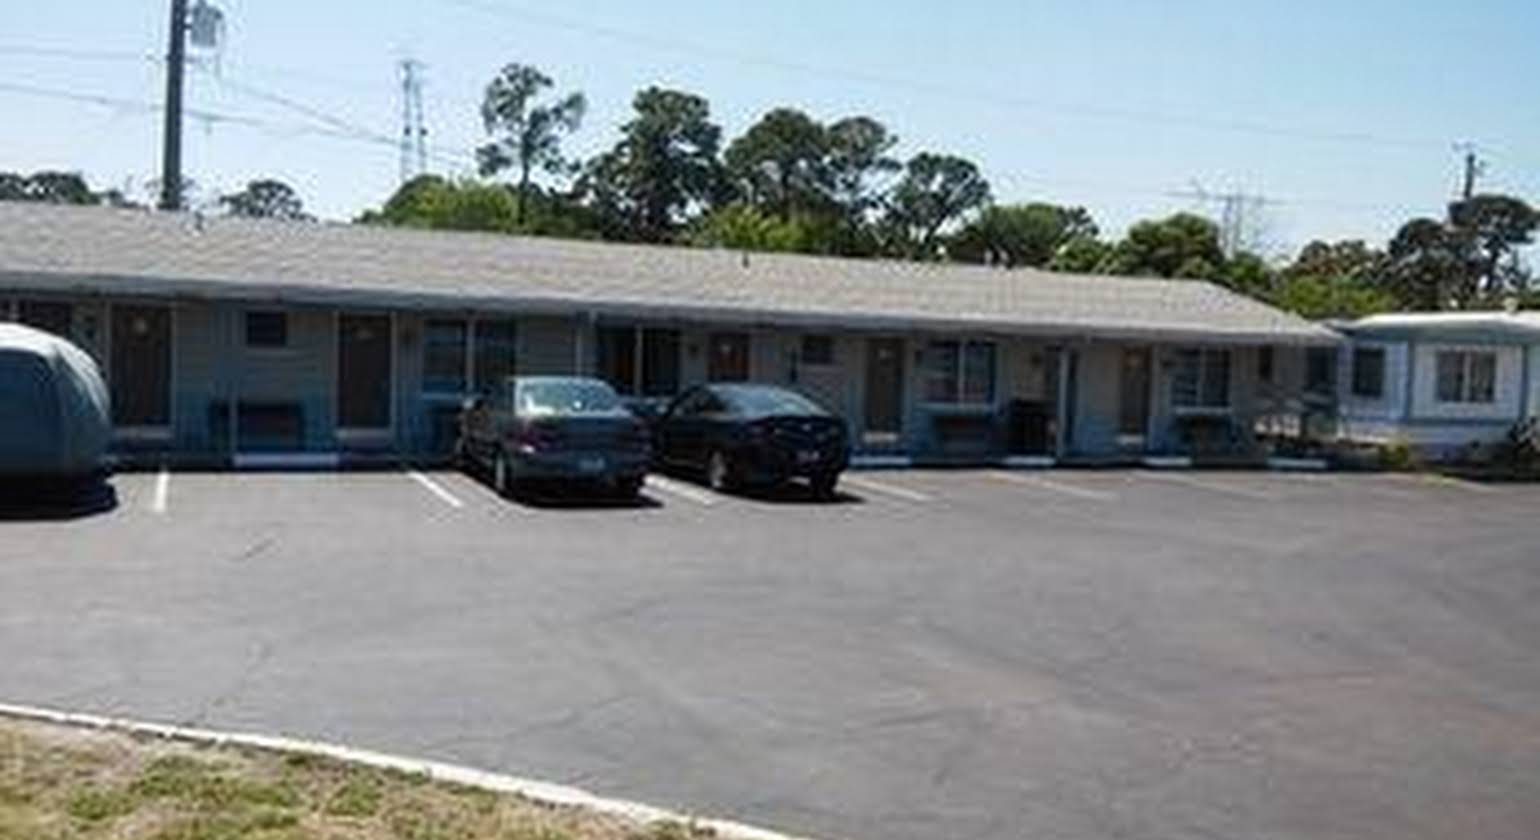 Carters Motel and Mobile Home Village